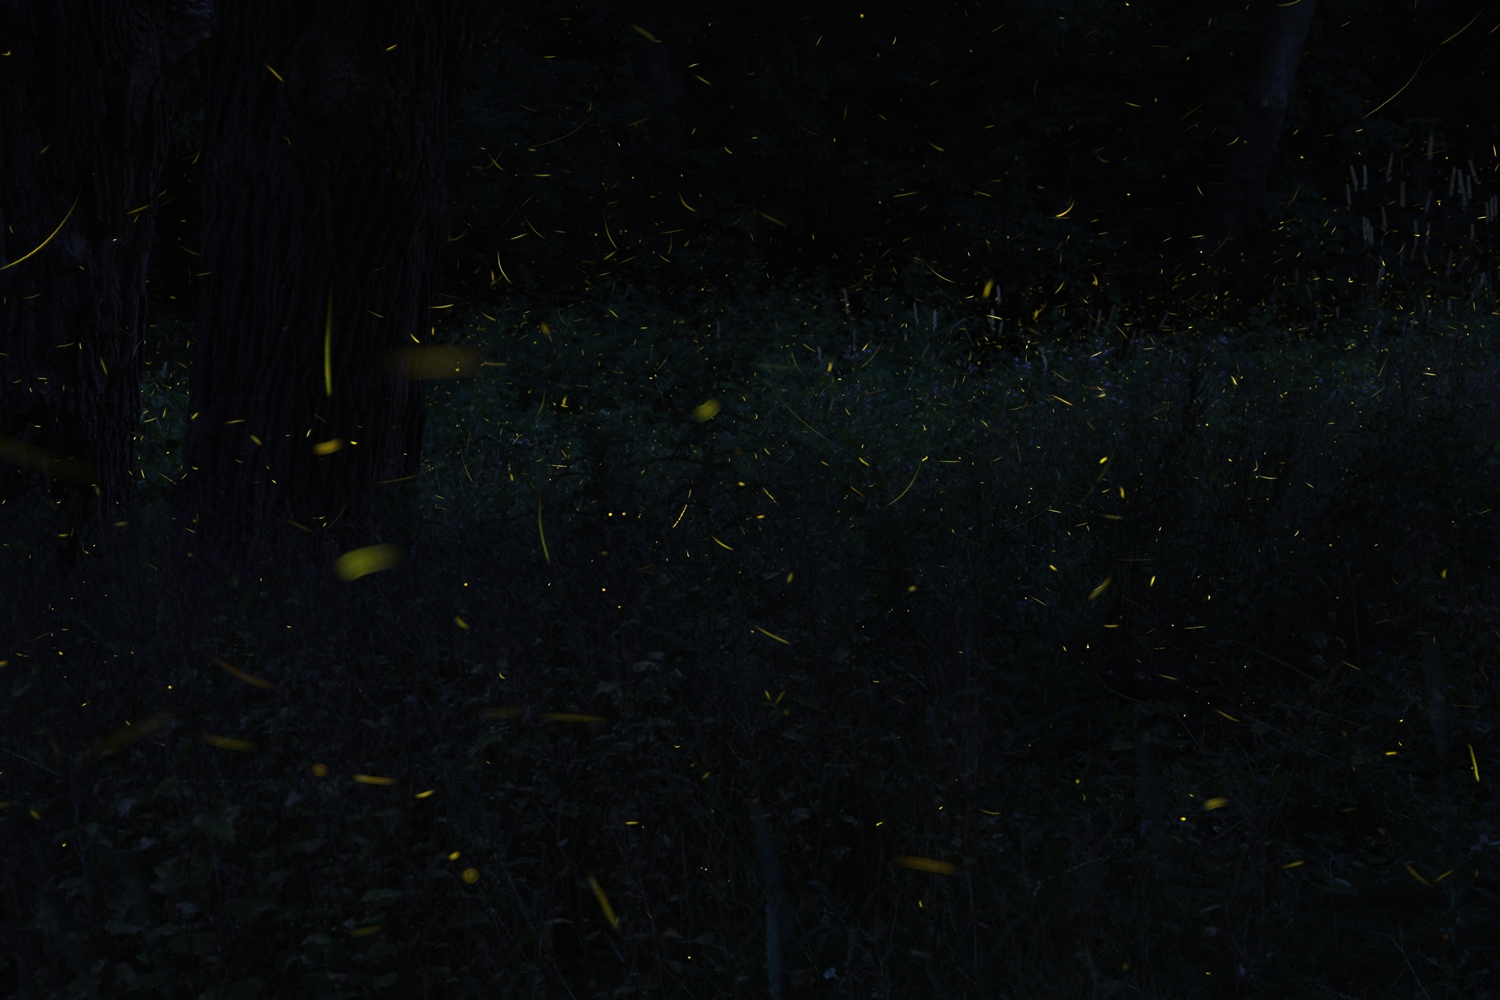 Stacked photograph of fireflies